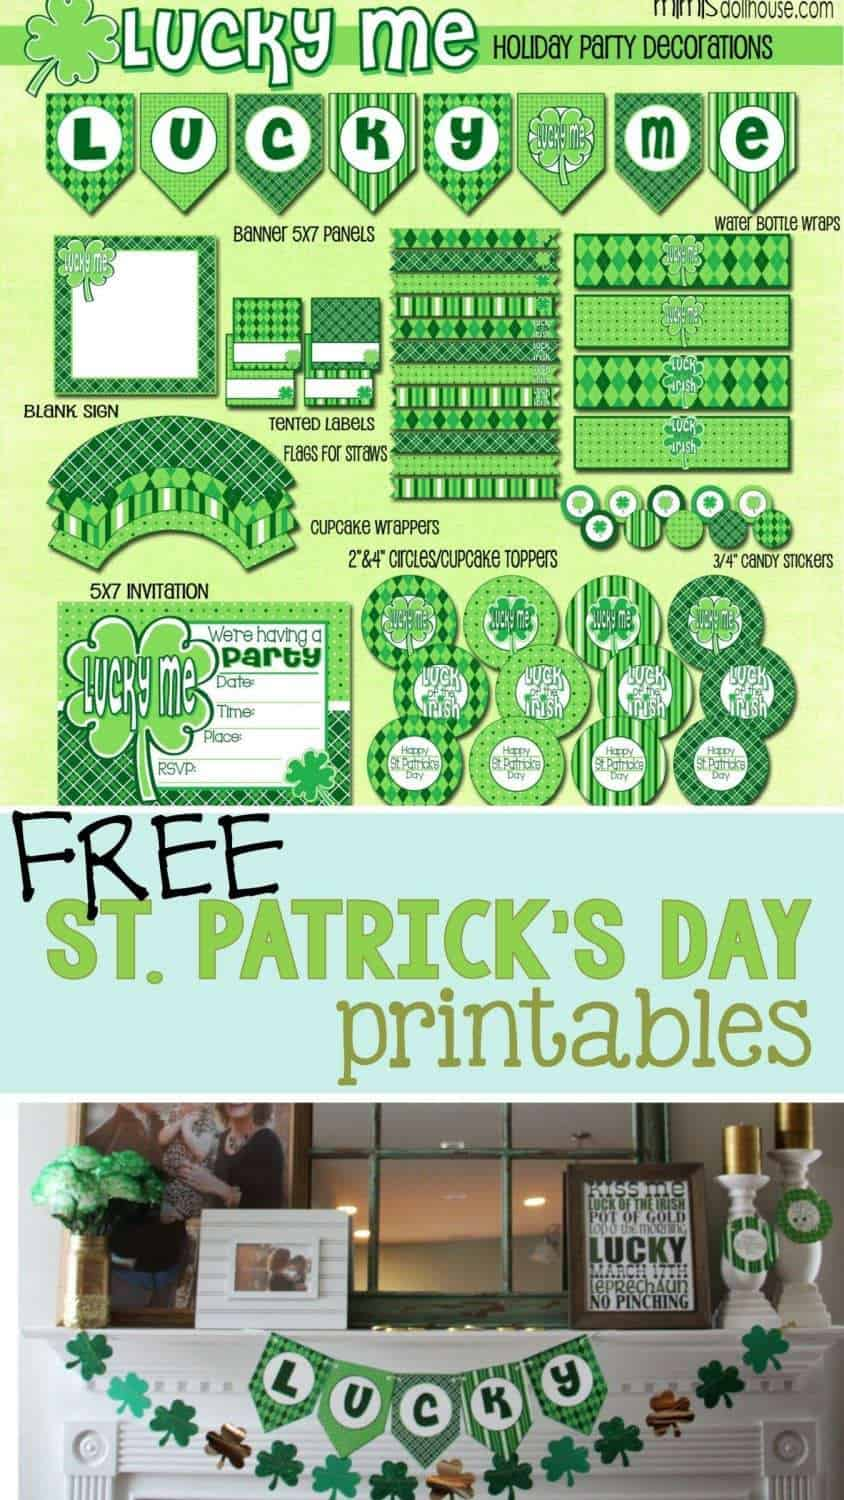 St. Patrick's Day: FREE St. Paddy's Day Printables. Did you know we have FREE St. Paddy's Day Printables?  Decorate your home for St. Patrick's Day or throw a St. Patrick's Day Party!!